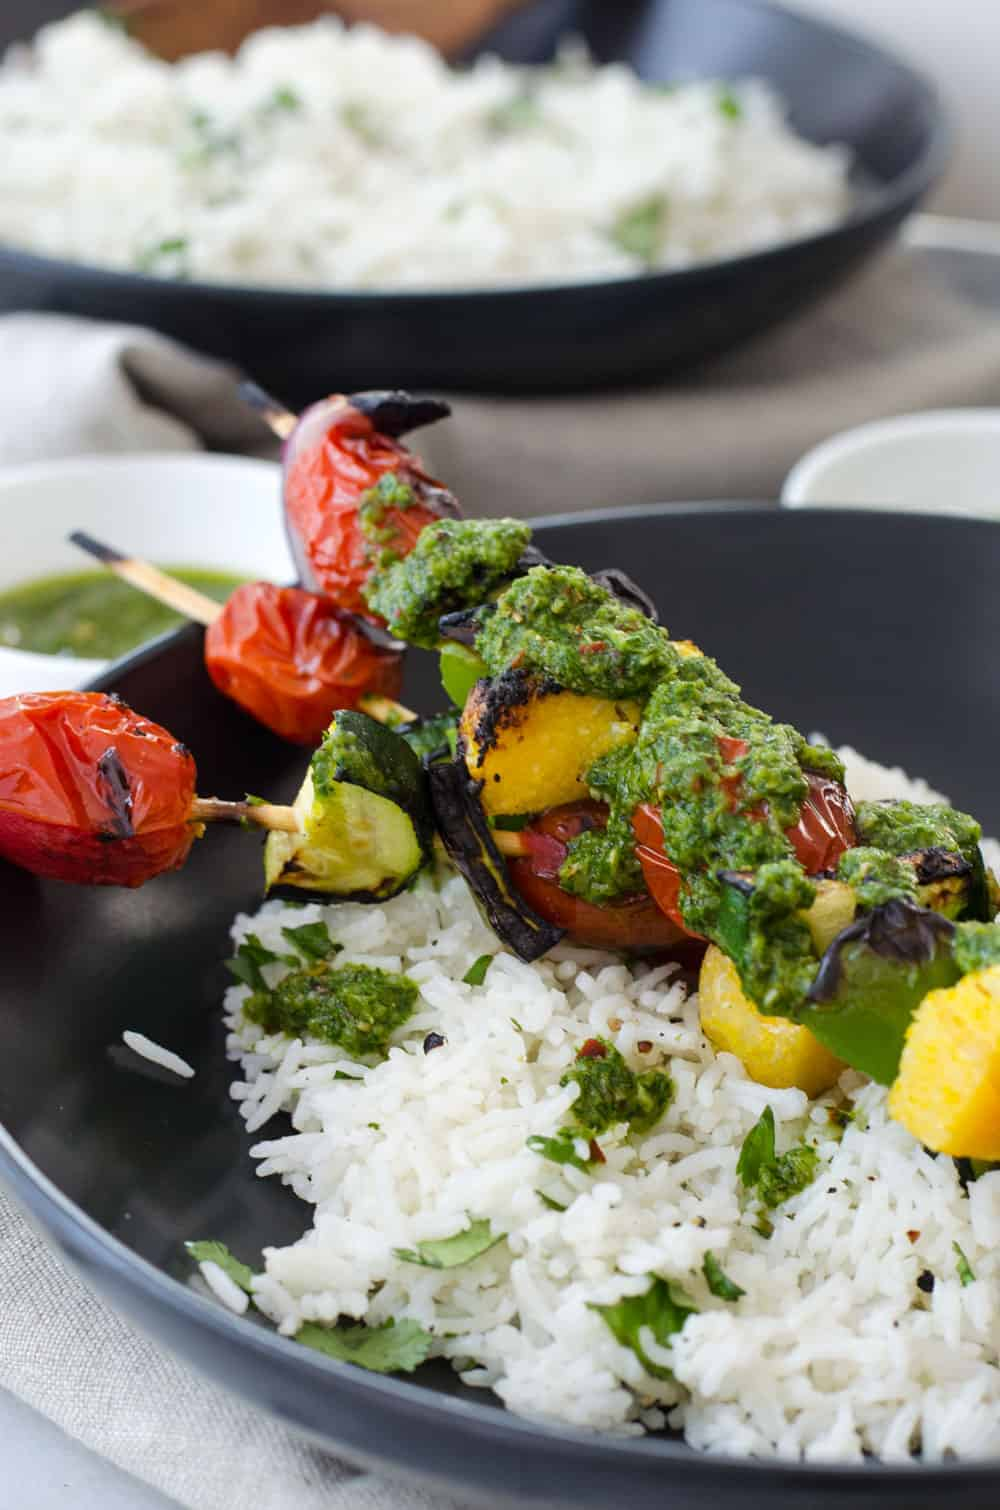 Vegan Polenta Kebobs with Chimichurri Sauce! Perfect for cookouts this summer! Served with herbed rice, this vegan and glutenfree dish is a must make. | delishknowledge.com